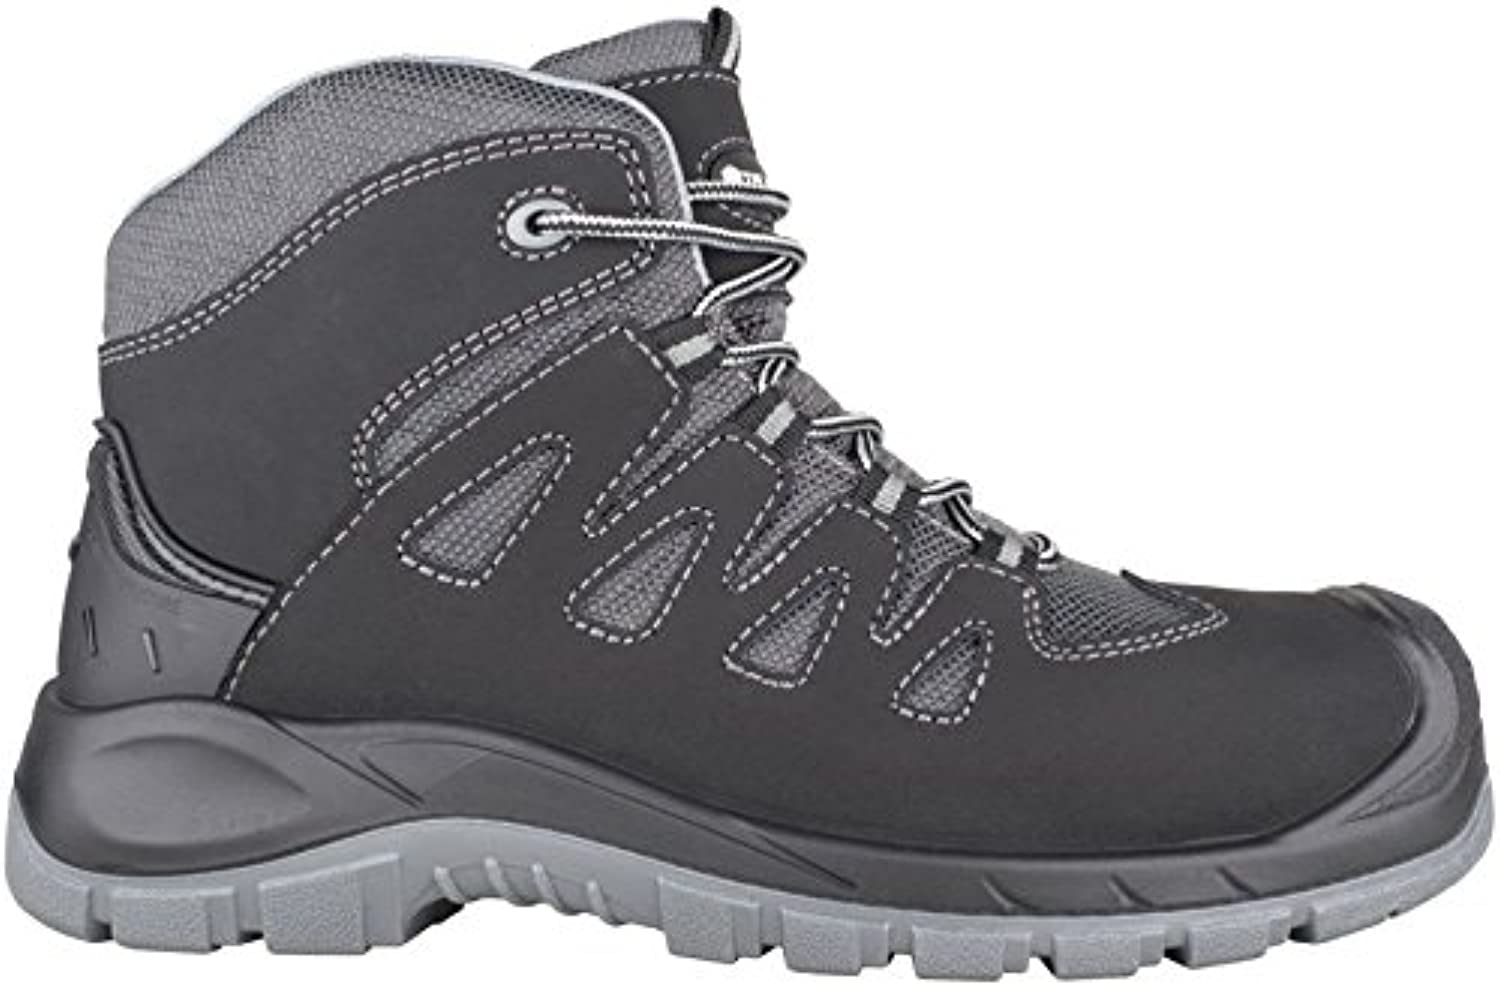 TG8047041 SAFETY shoes ICON  S3 Src Size 41 In Black